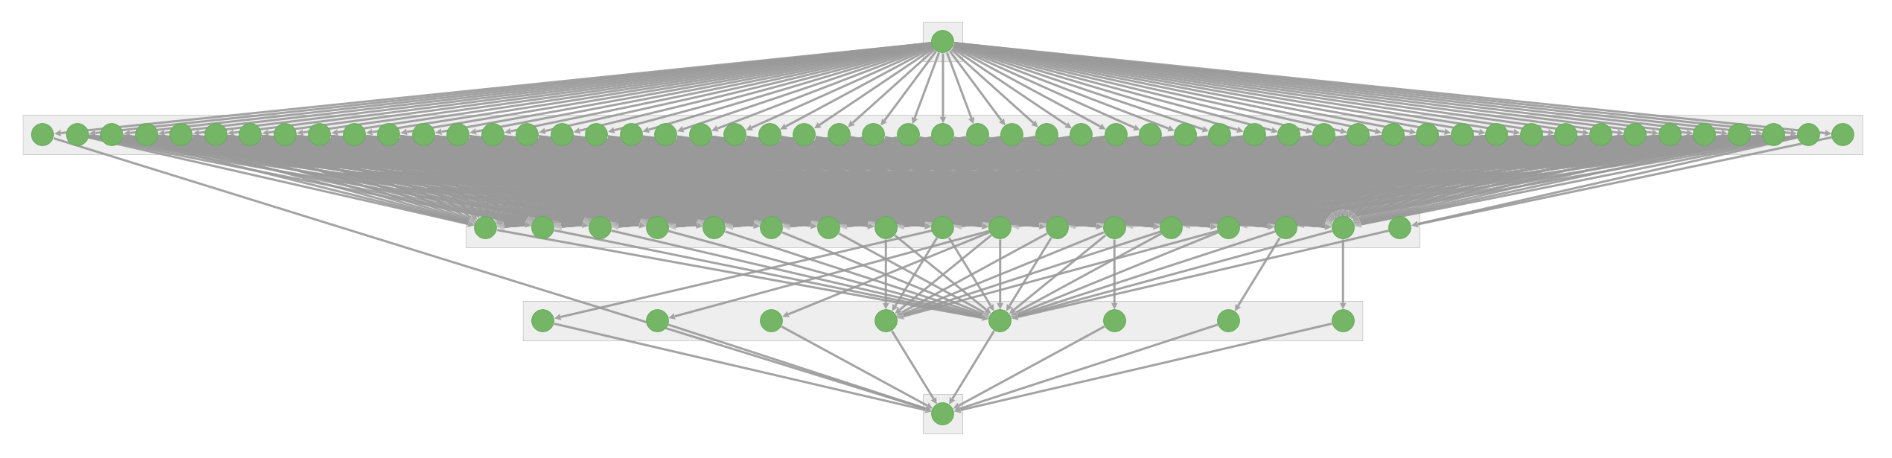 Directed acyclic graph